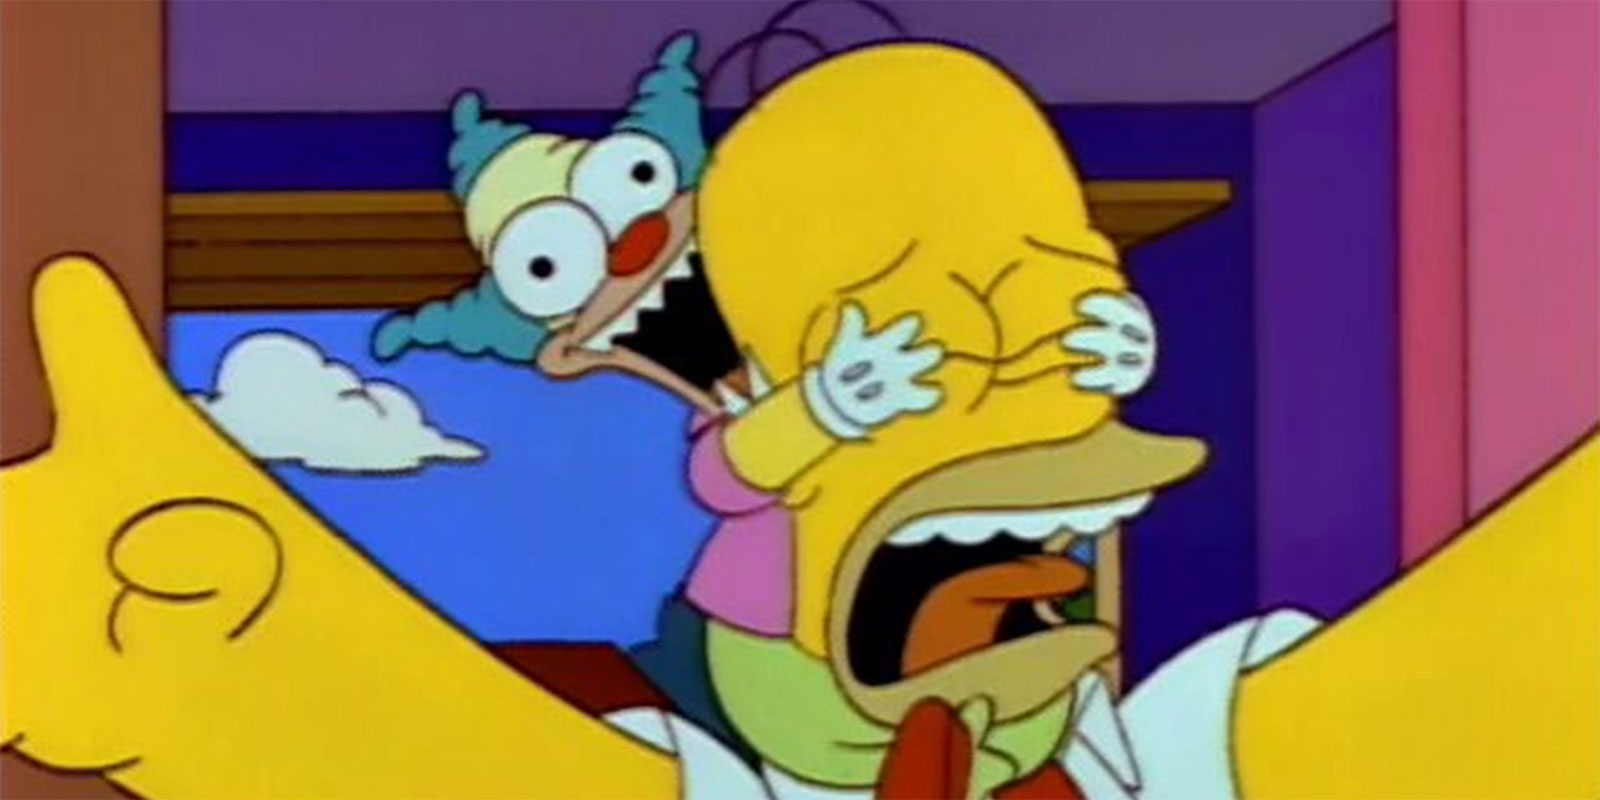 Halloween Simpsons Treehouse Of Horror.11 Best Simpsons Treehouse Of Horror Stories In Order